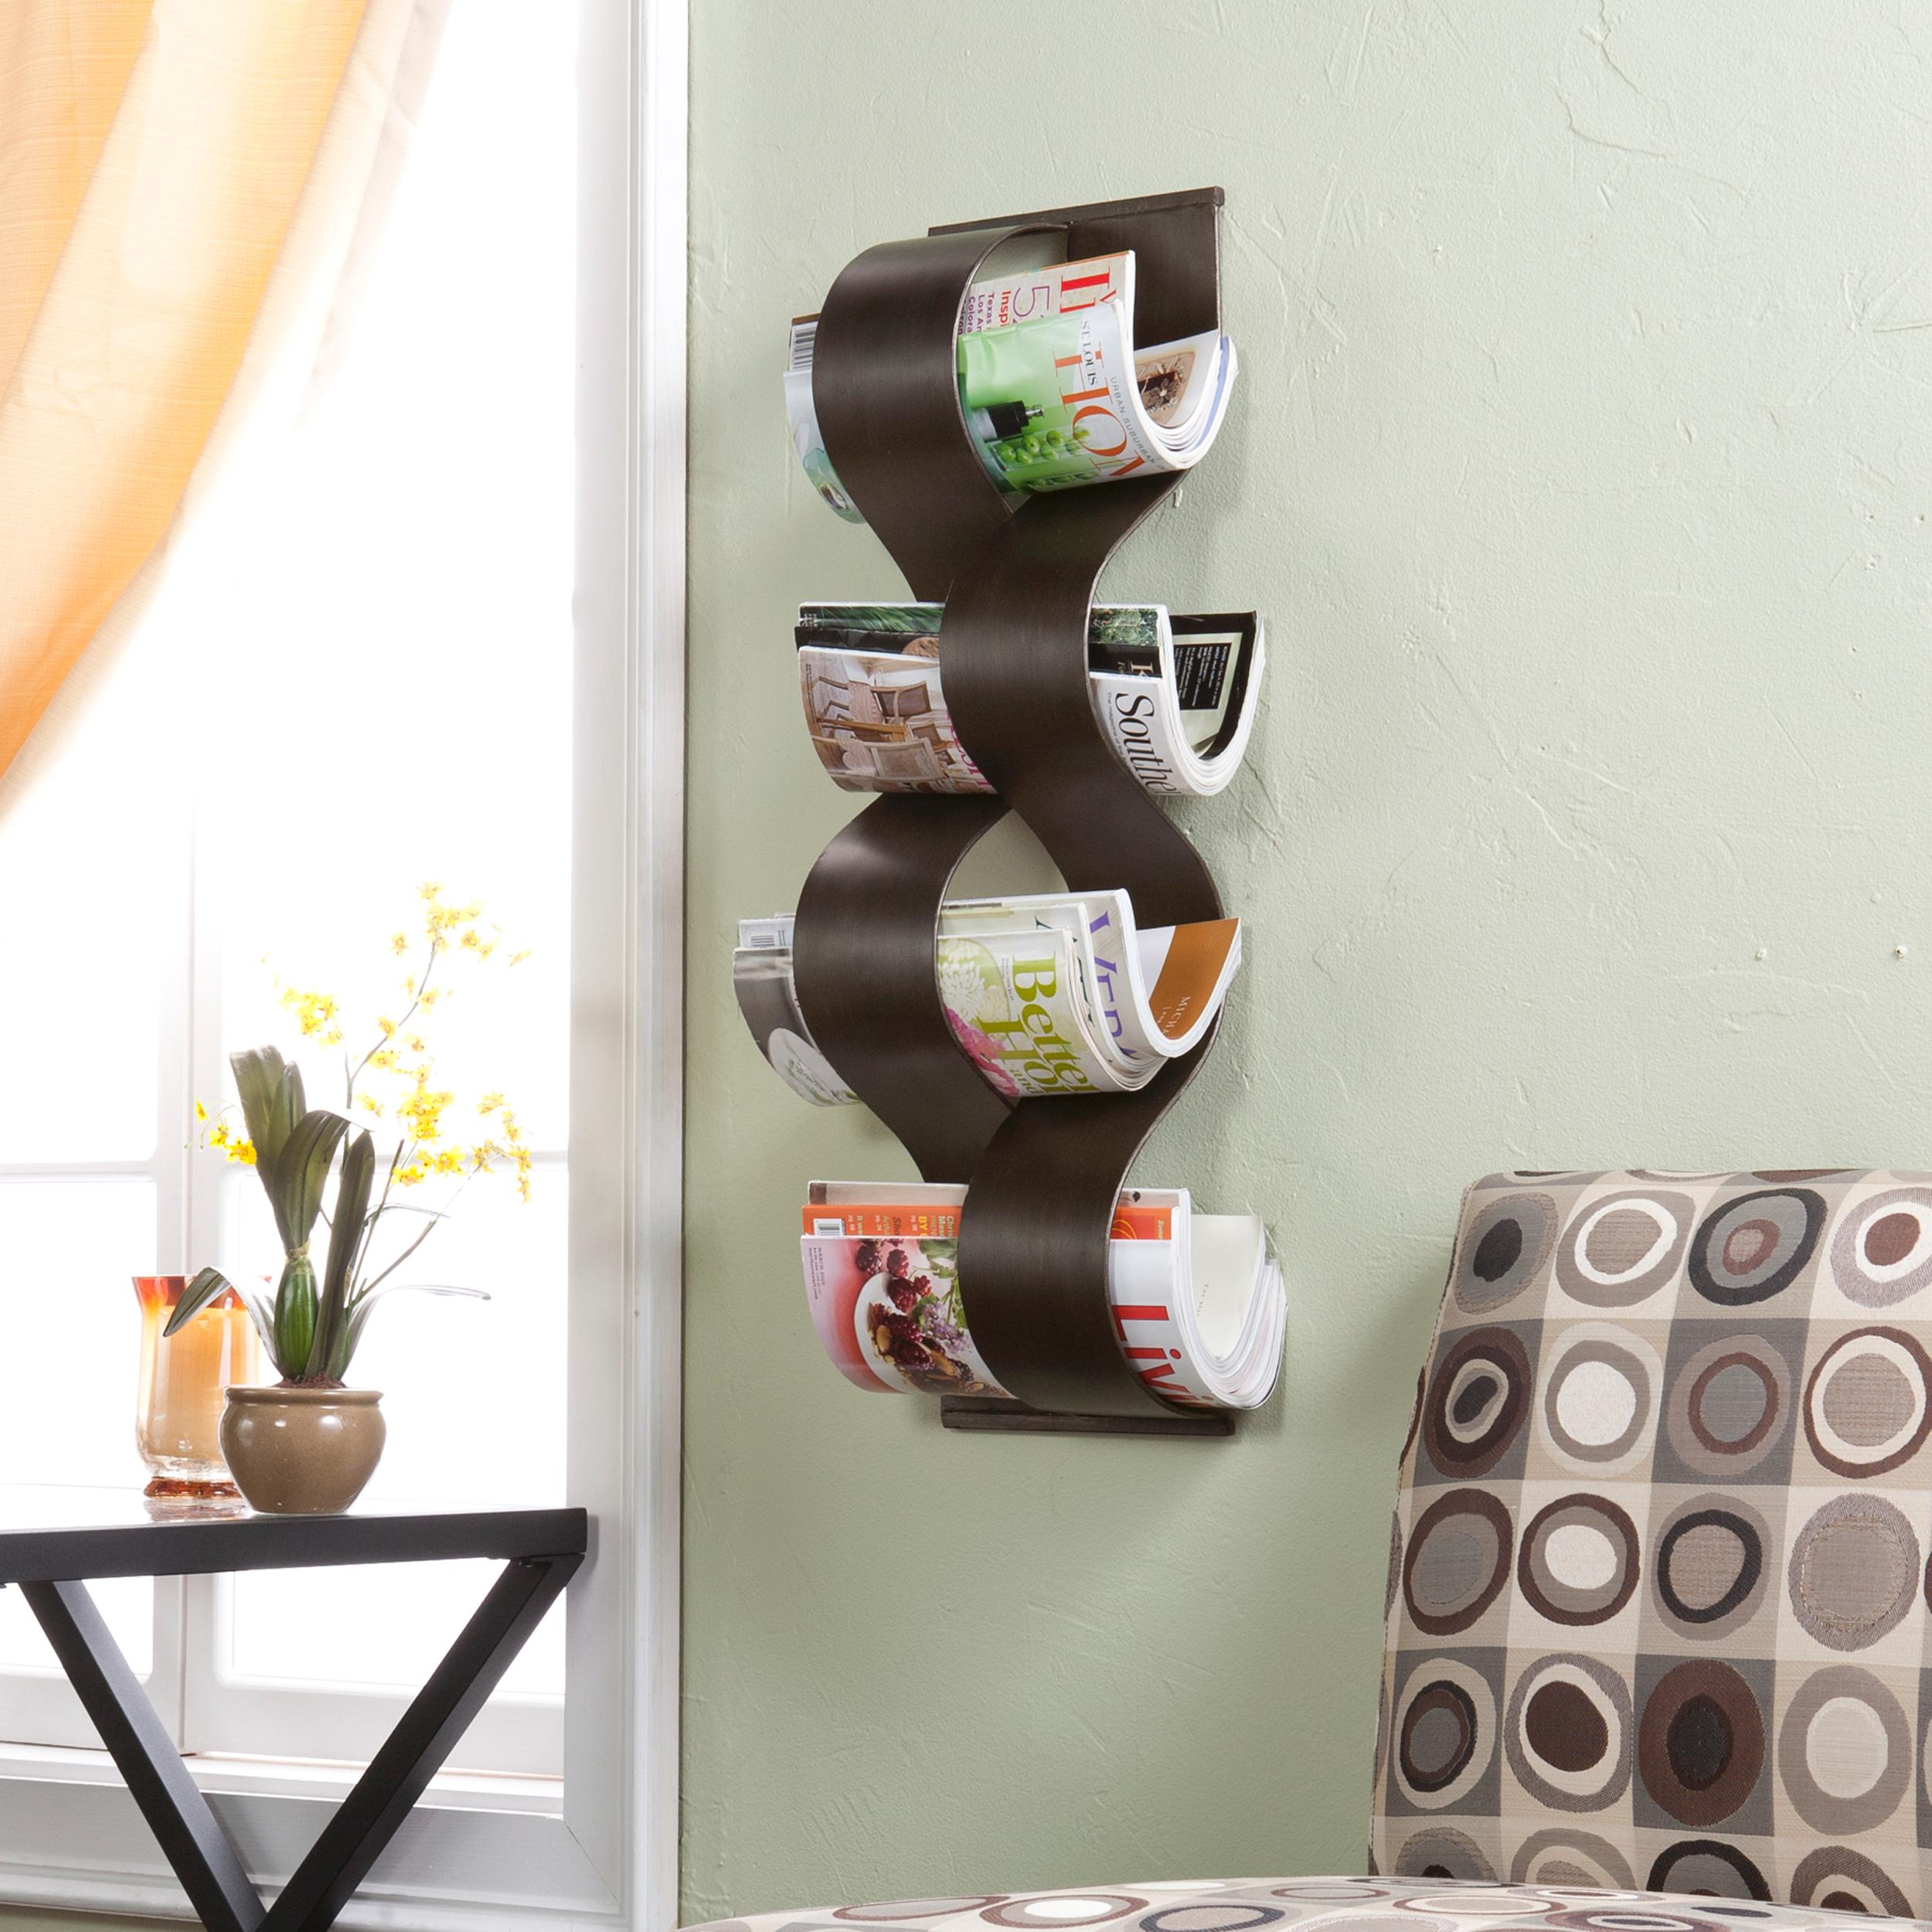 View larger for Wall mounted bathroom magazine rack